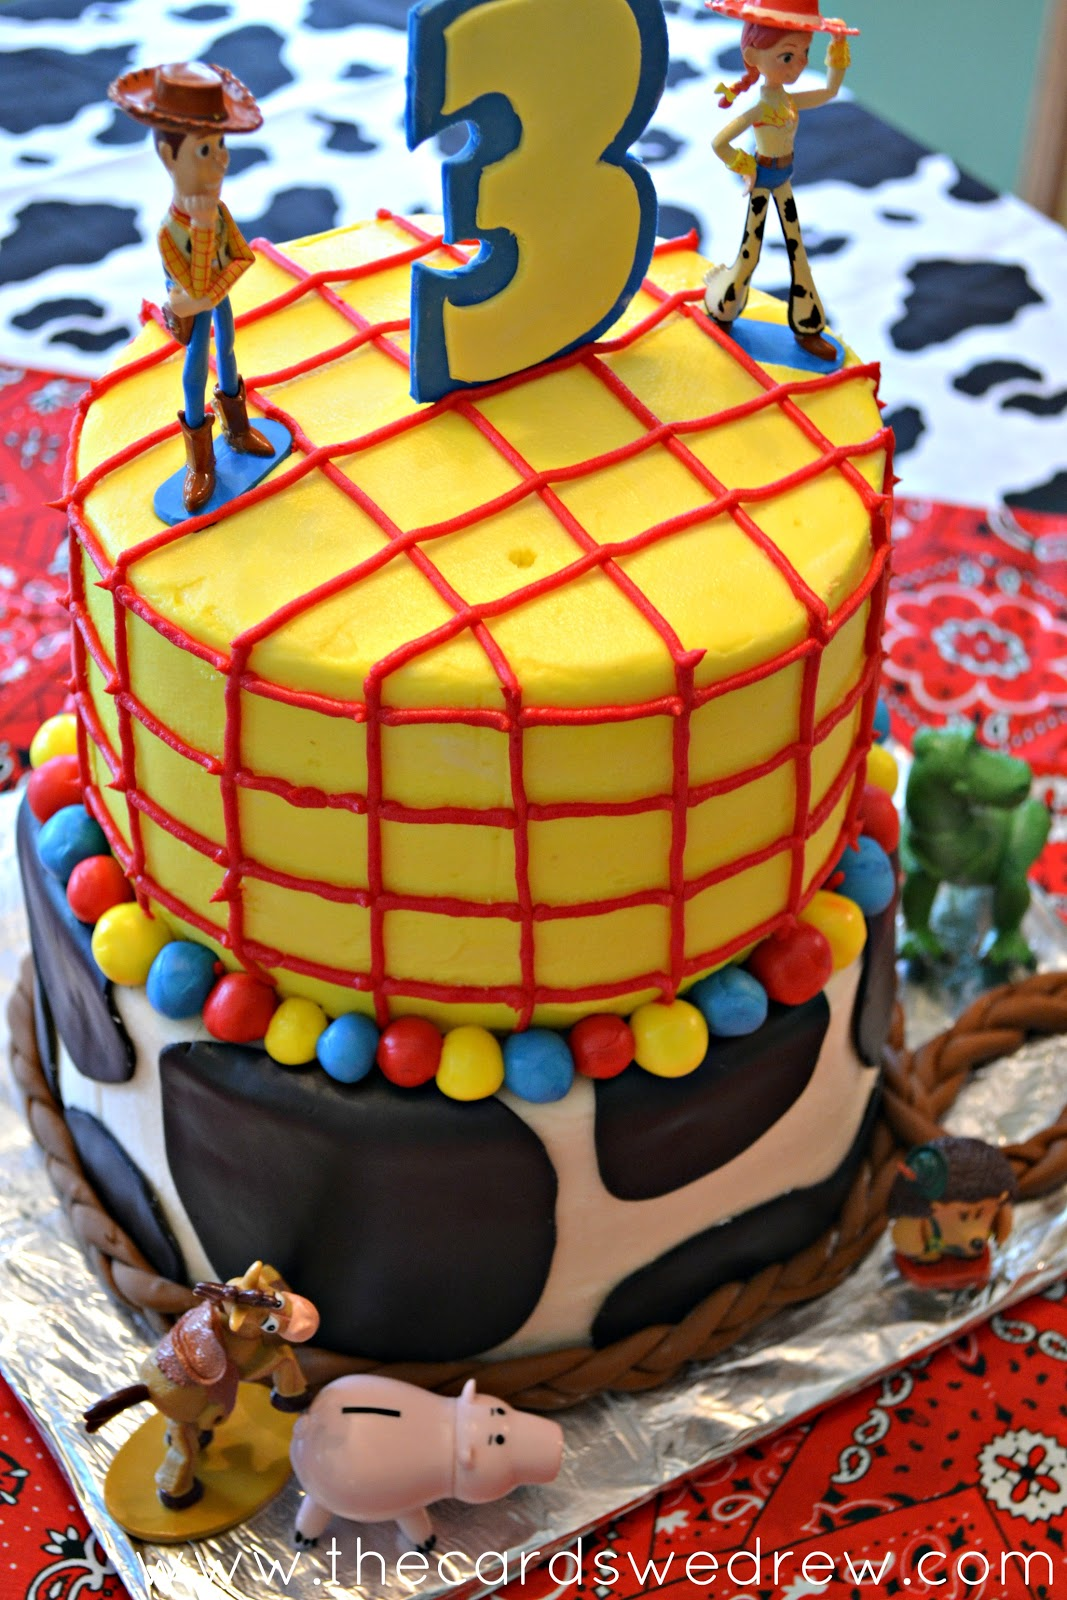 Toy Story Cracked Magazine: My Son's Toy Story Birthday Party